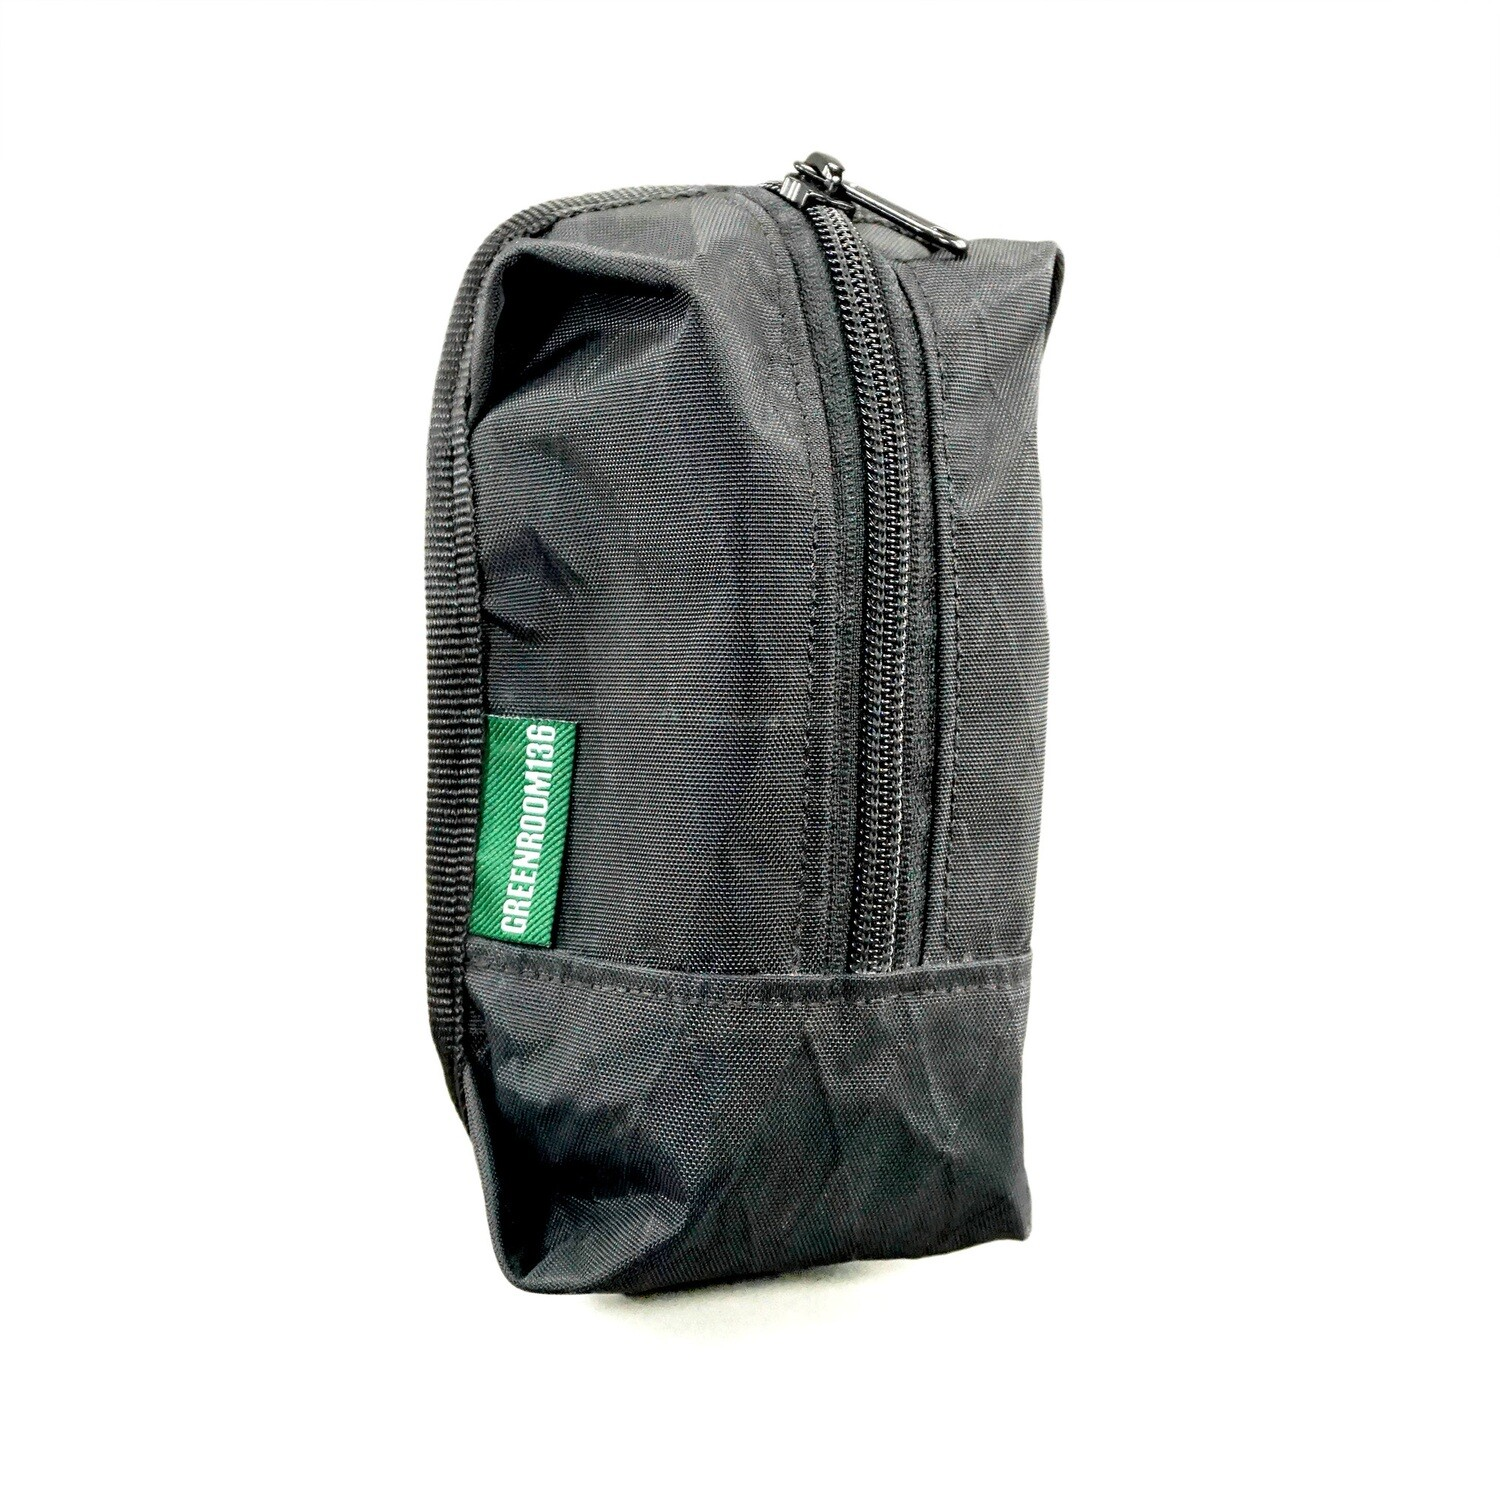 SidePouch 4